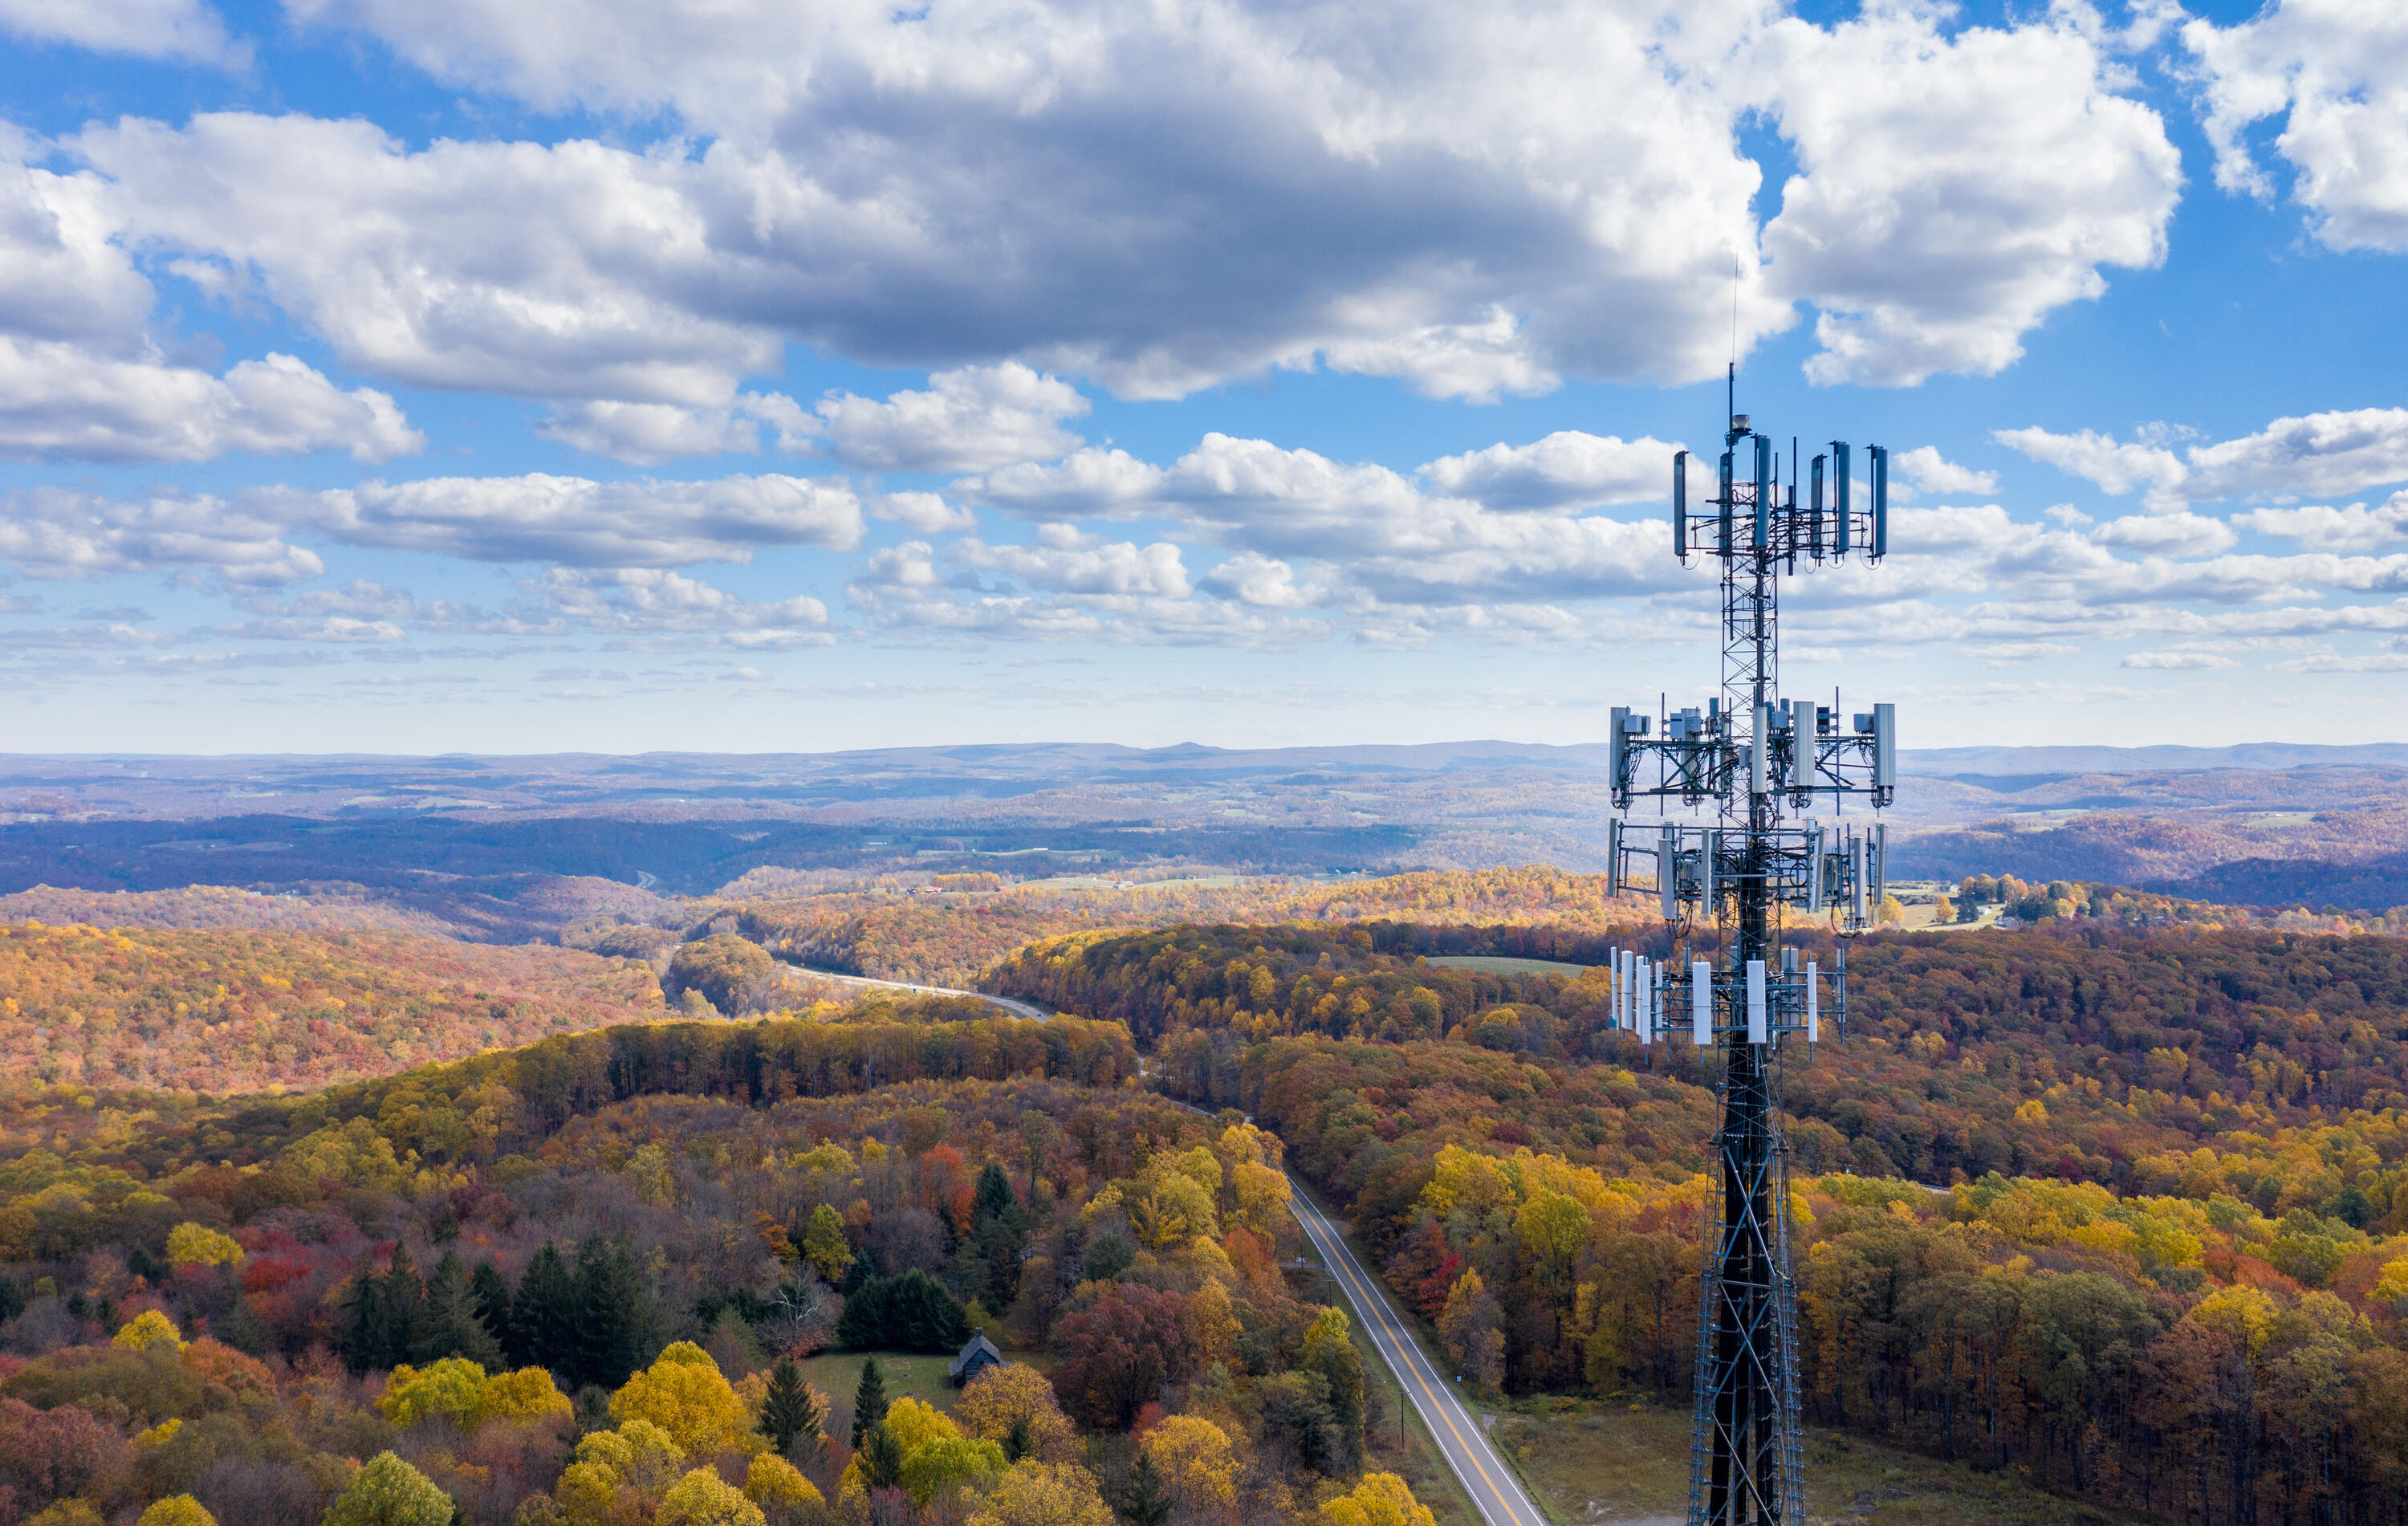 Cell phone tower in front of landscape